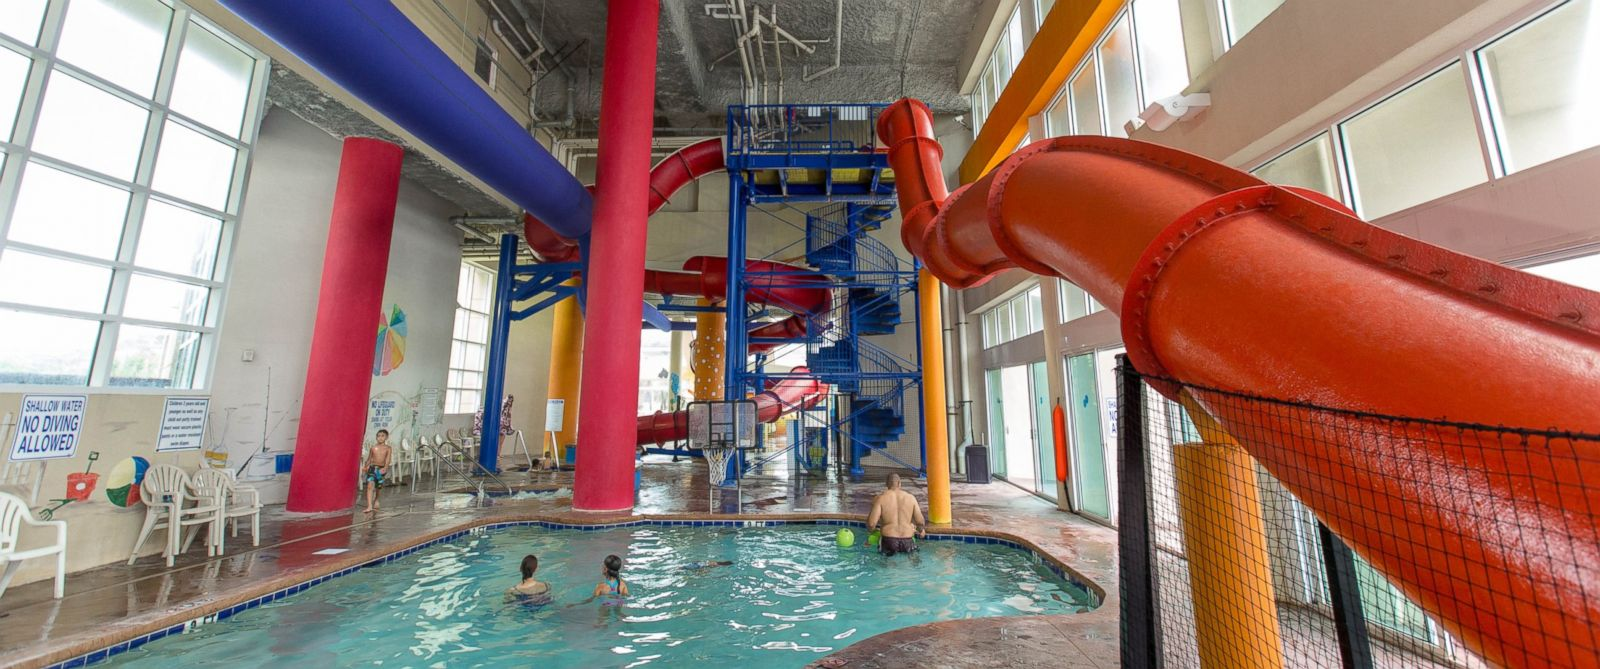 6 Hotel Water Parks In Myrtle Beach That Are Making A